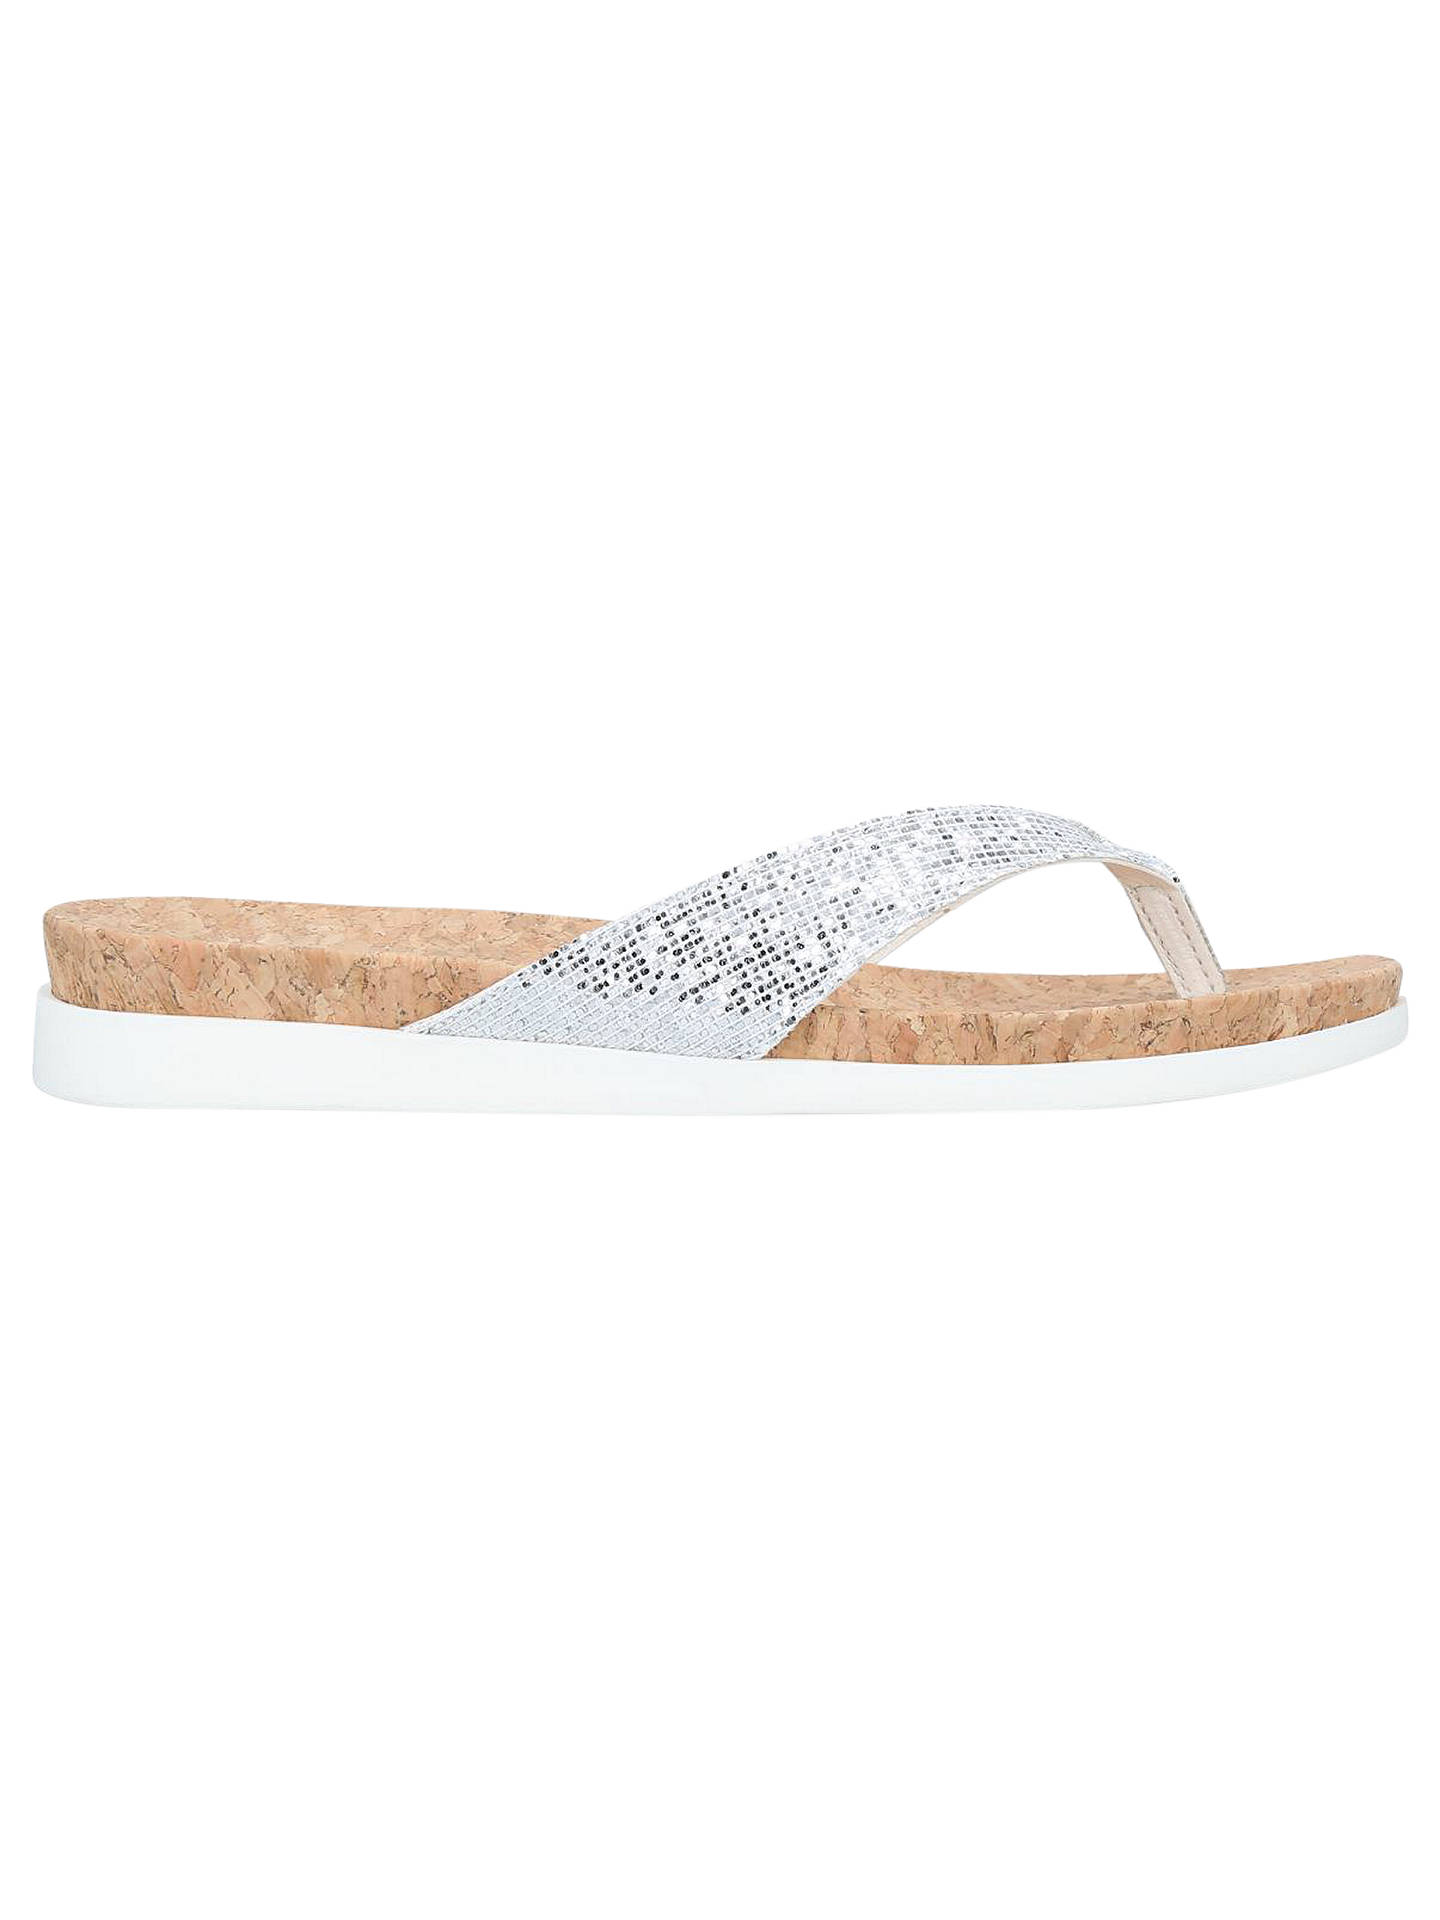 e199f7c22 Carvela Barb Glitter Slip On Sandals at John Lewis   Partners